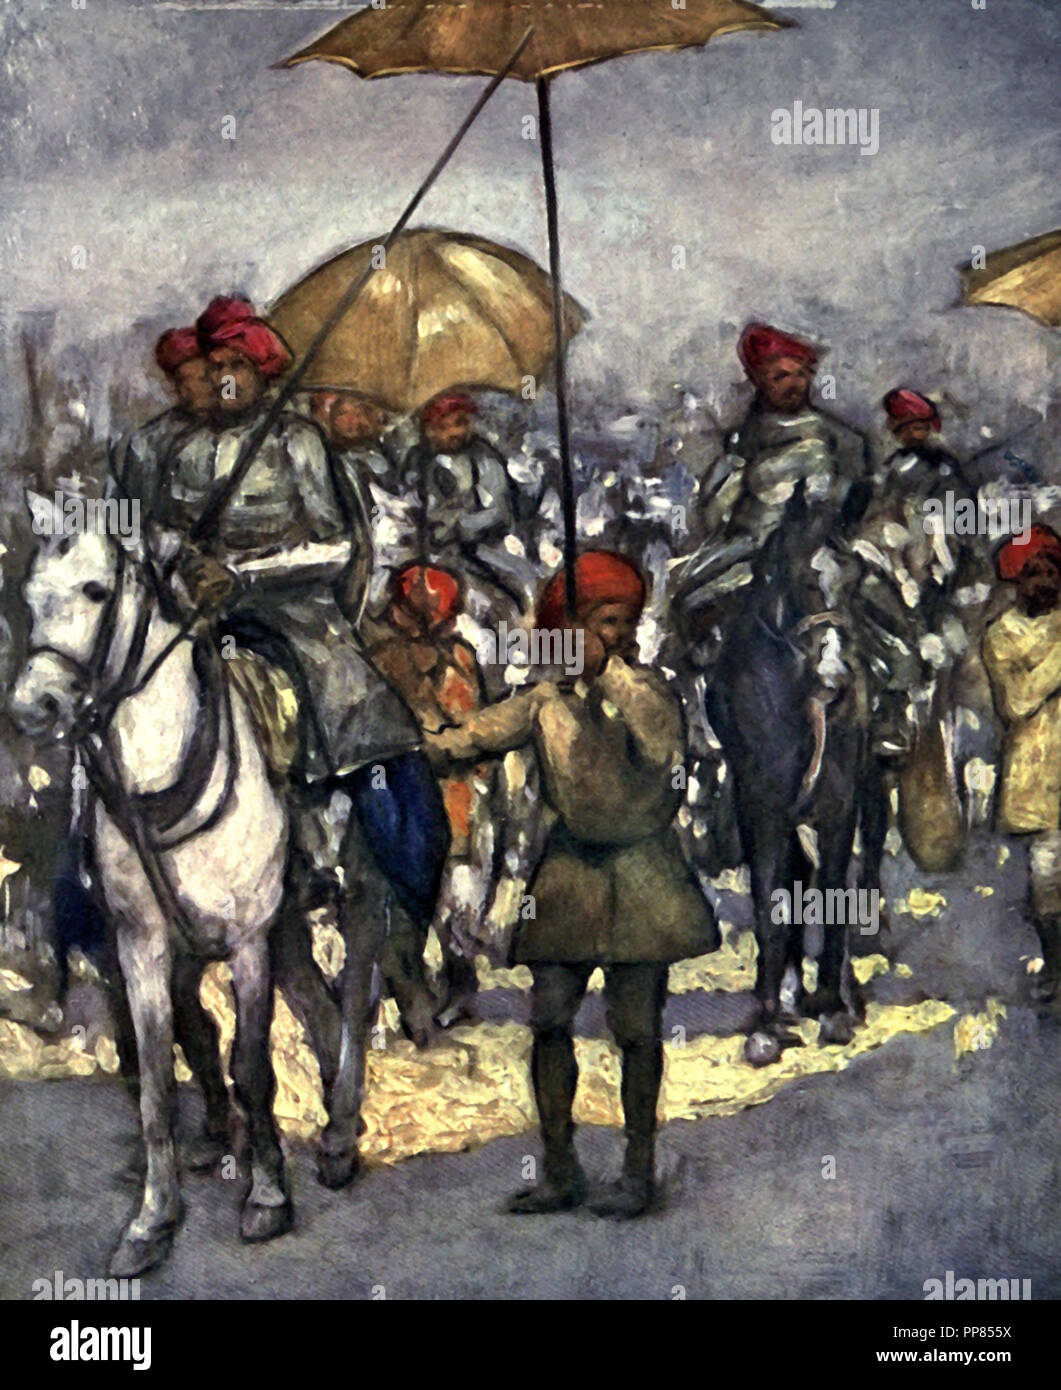 The Shan Chiefs retainers at the Native Review - Major Dunlop Smith made them open their umbrellas at the last moment, adding interest and brilliancy to the group, India, circa 1900 - Stock Image